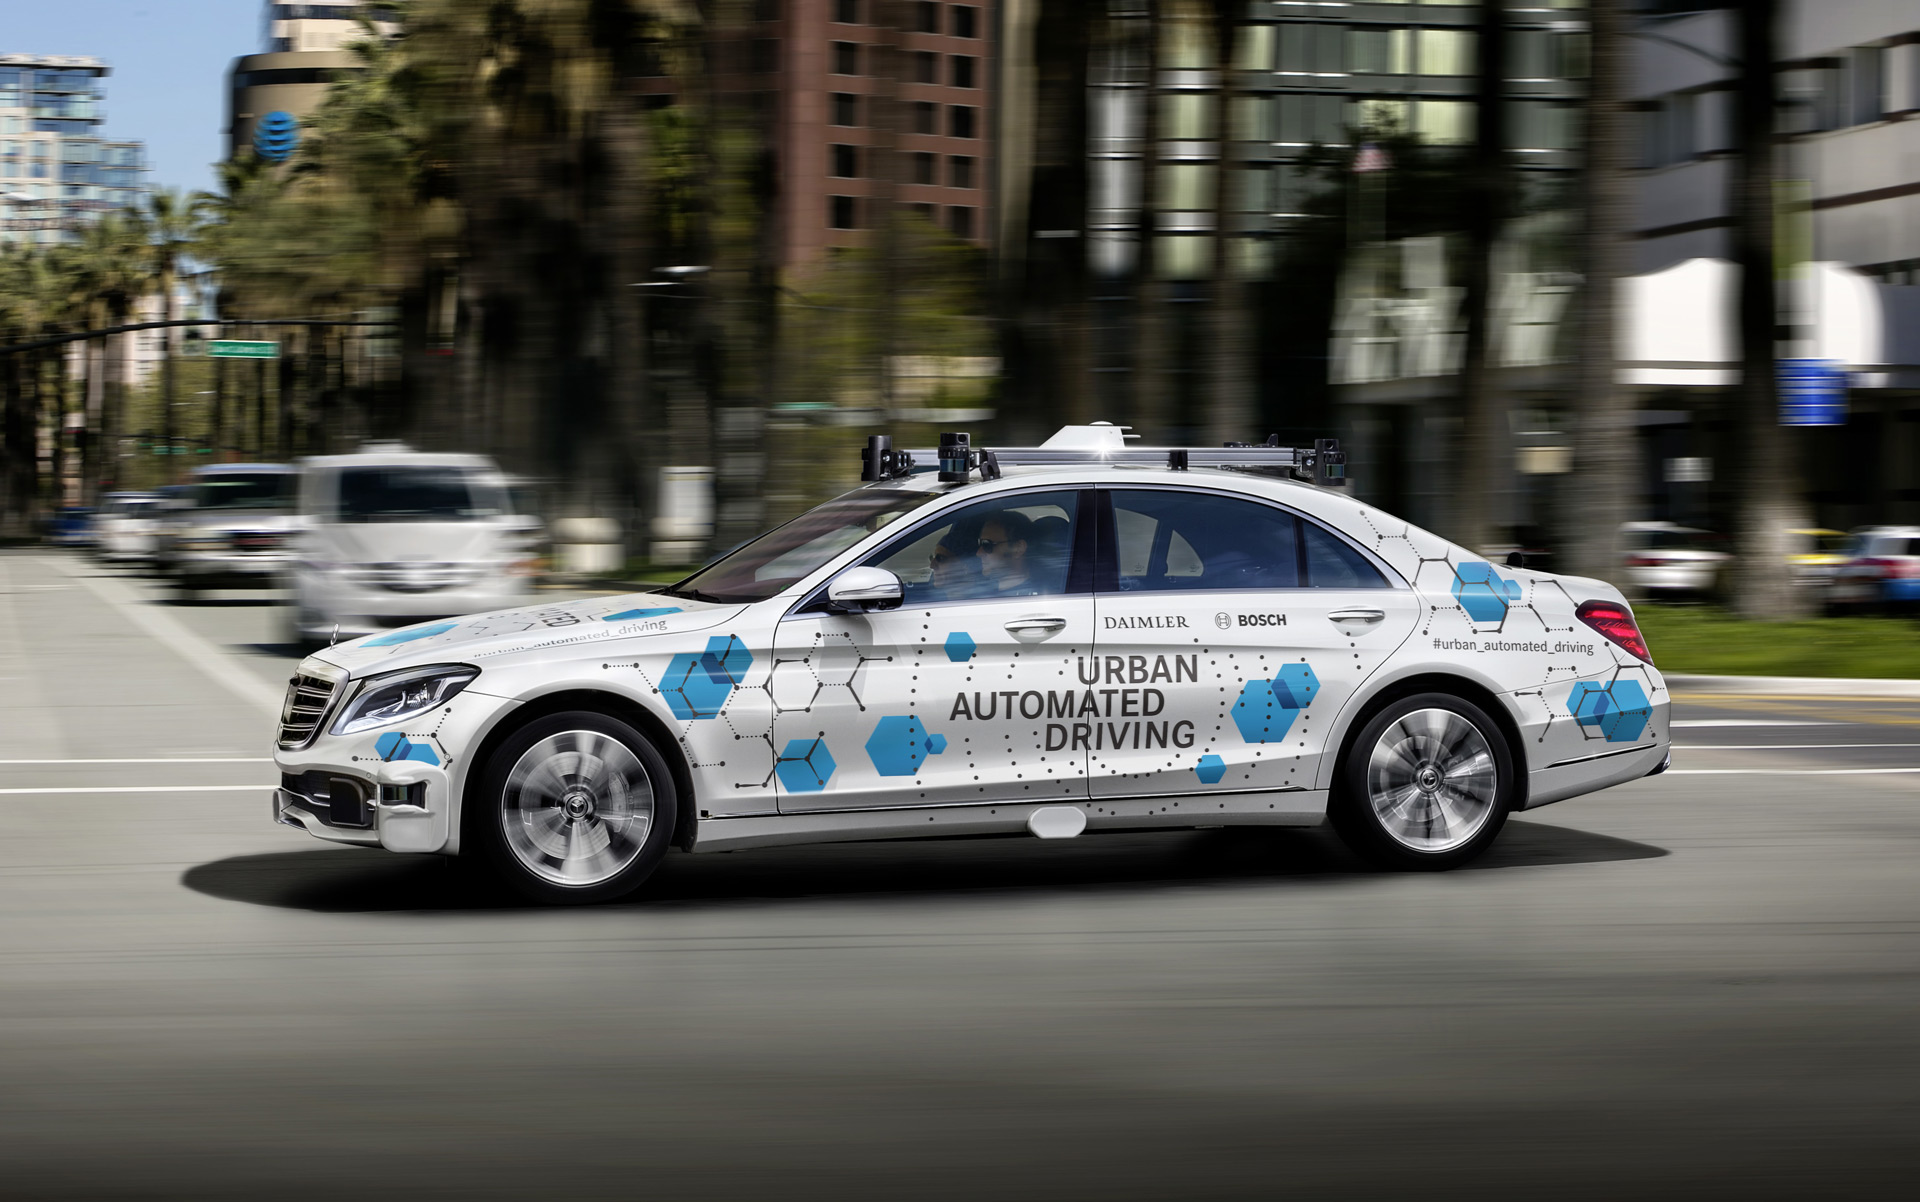 Daimler and Bosch self-driving cars will offer rides in